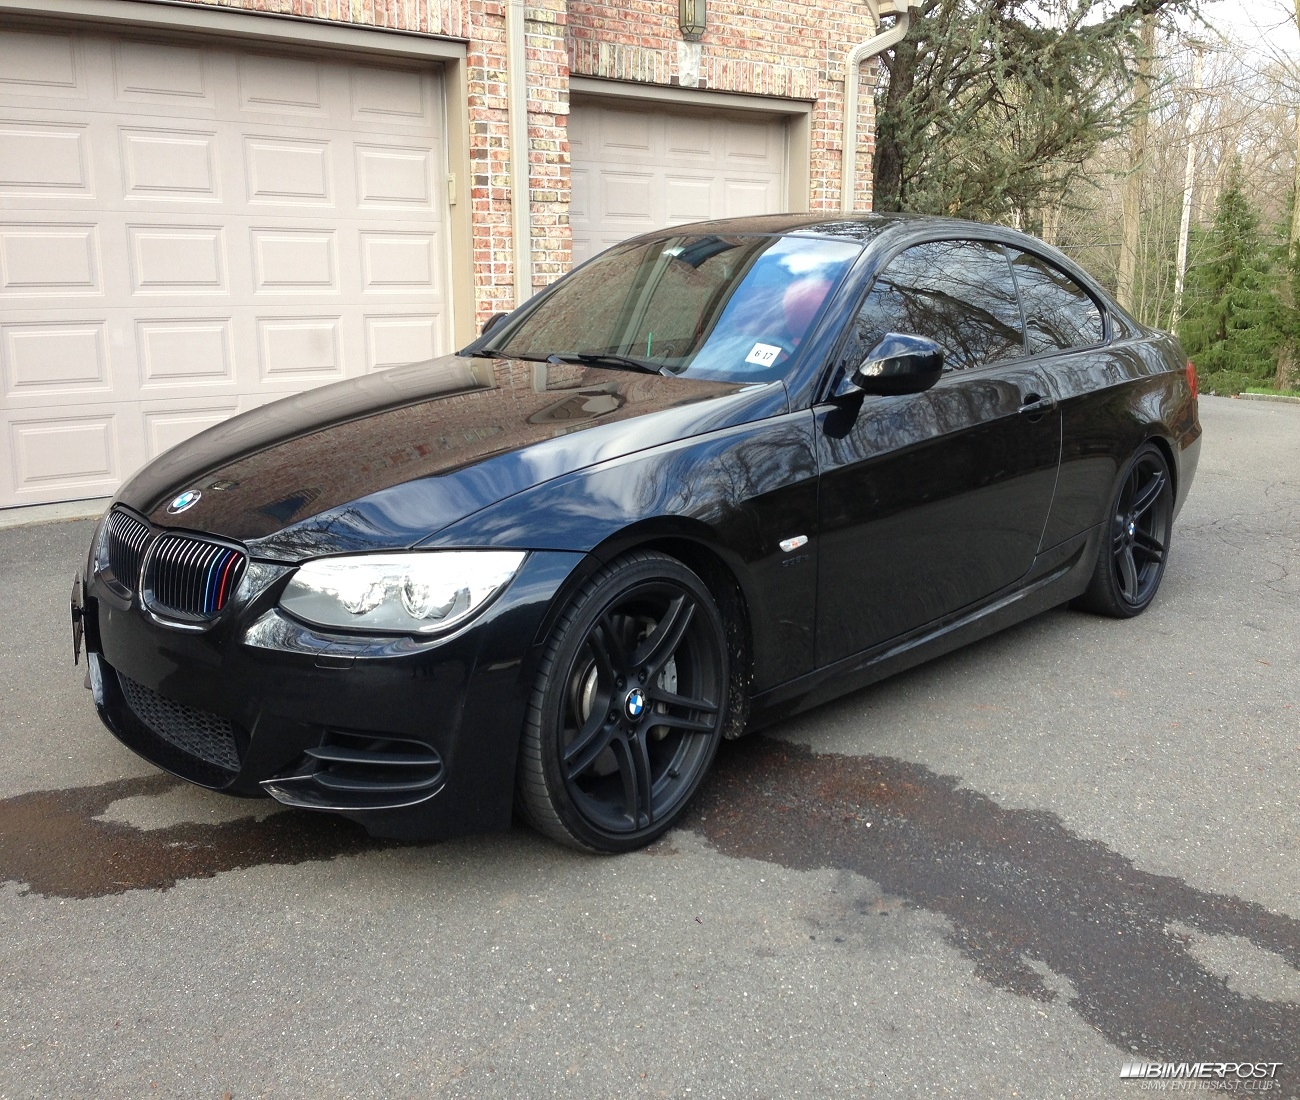 Bmw X6 Red Interior: Timore's 2012 BMW 335is